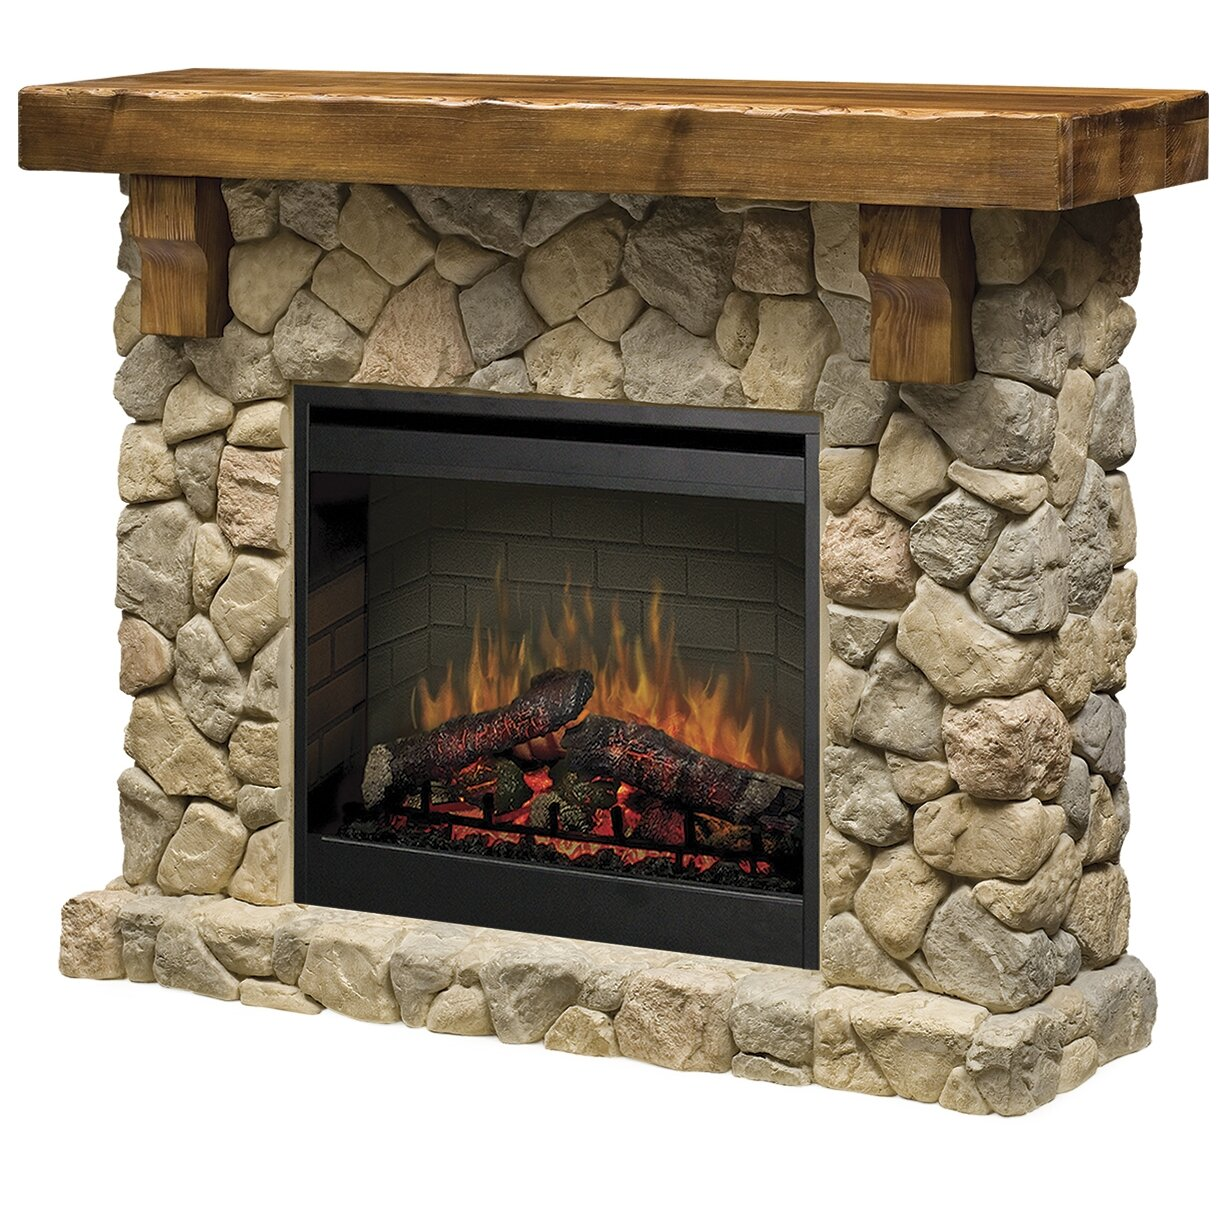 Dimplex Fieldstone Electric Fireplace - Dimplex Fieldstone Electric Fireplace & Reviews Wayfair